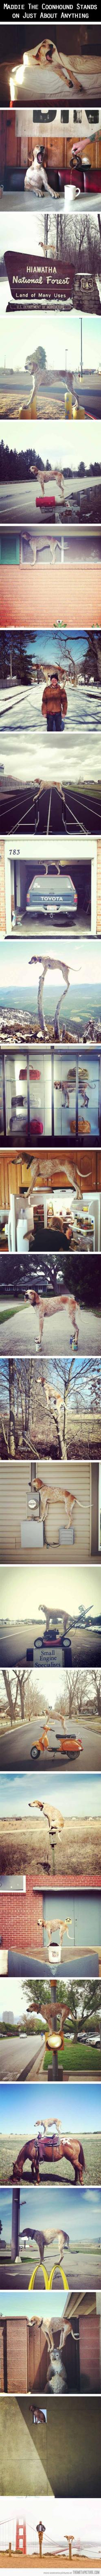 Meet Maddie, she likes to stand on things… This will forever make me smile :)!: Animals, Dogs, Pet, Things This, Funny, Coonhound, Meet Maddie